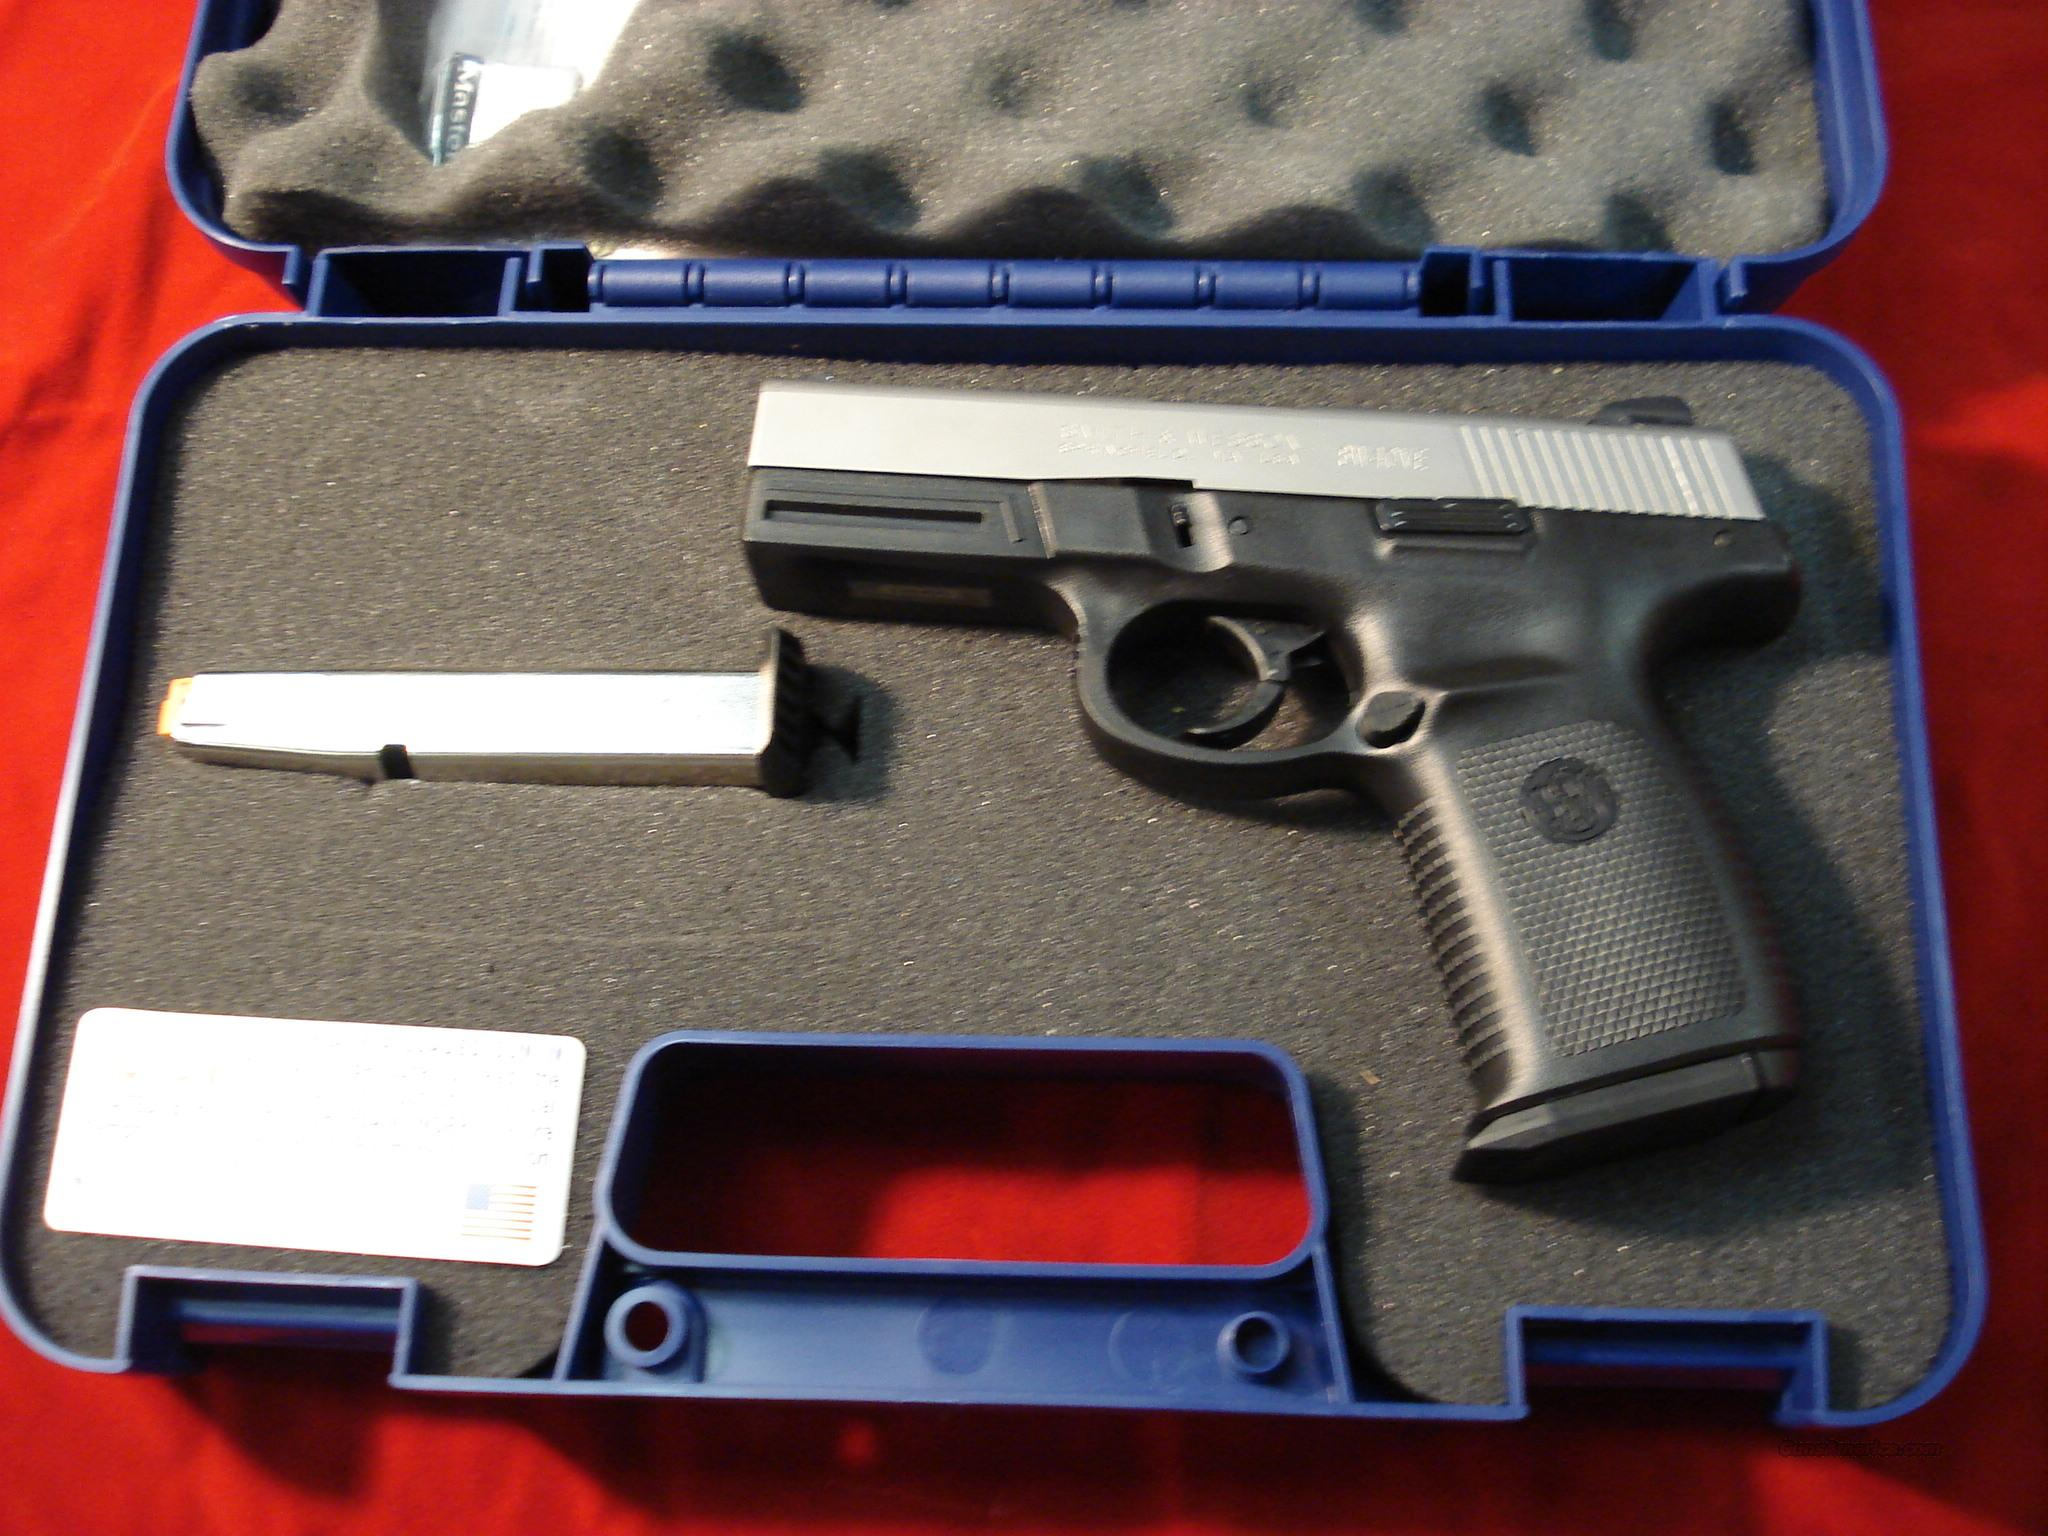 SMITH AND WESSON SIGMA STAINLESS 40 S&W NEW   Guns > Pistols > Smith & Wesson Pistols - Autos > Polymer Frame